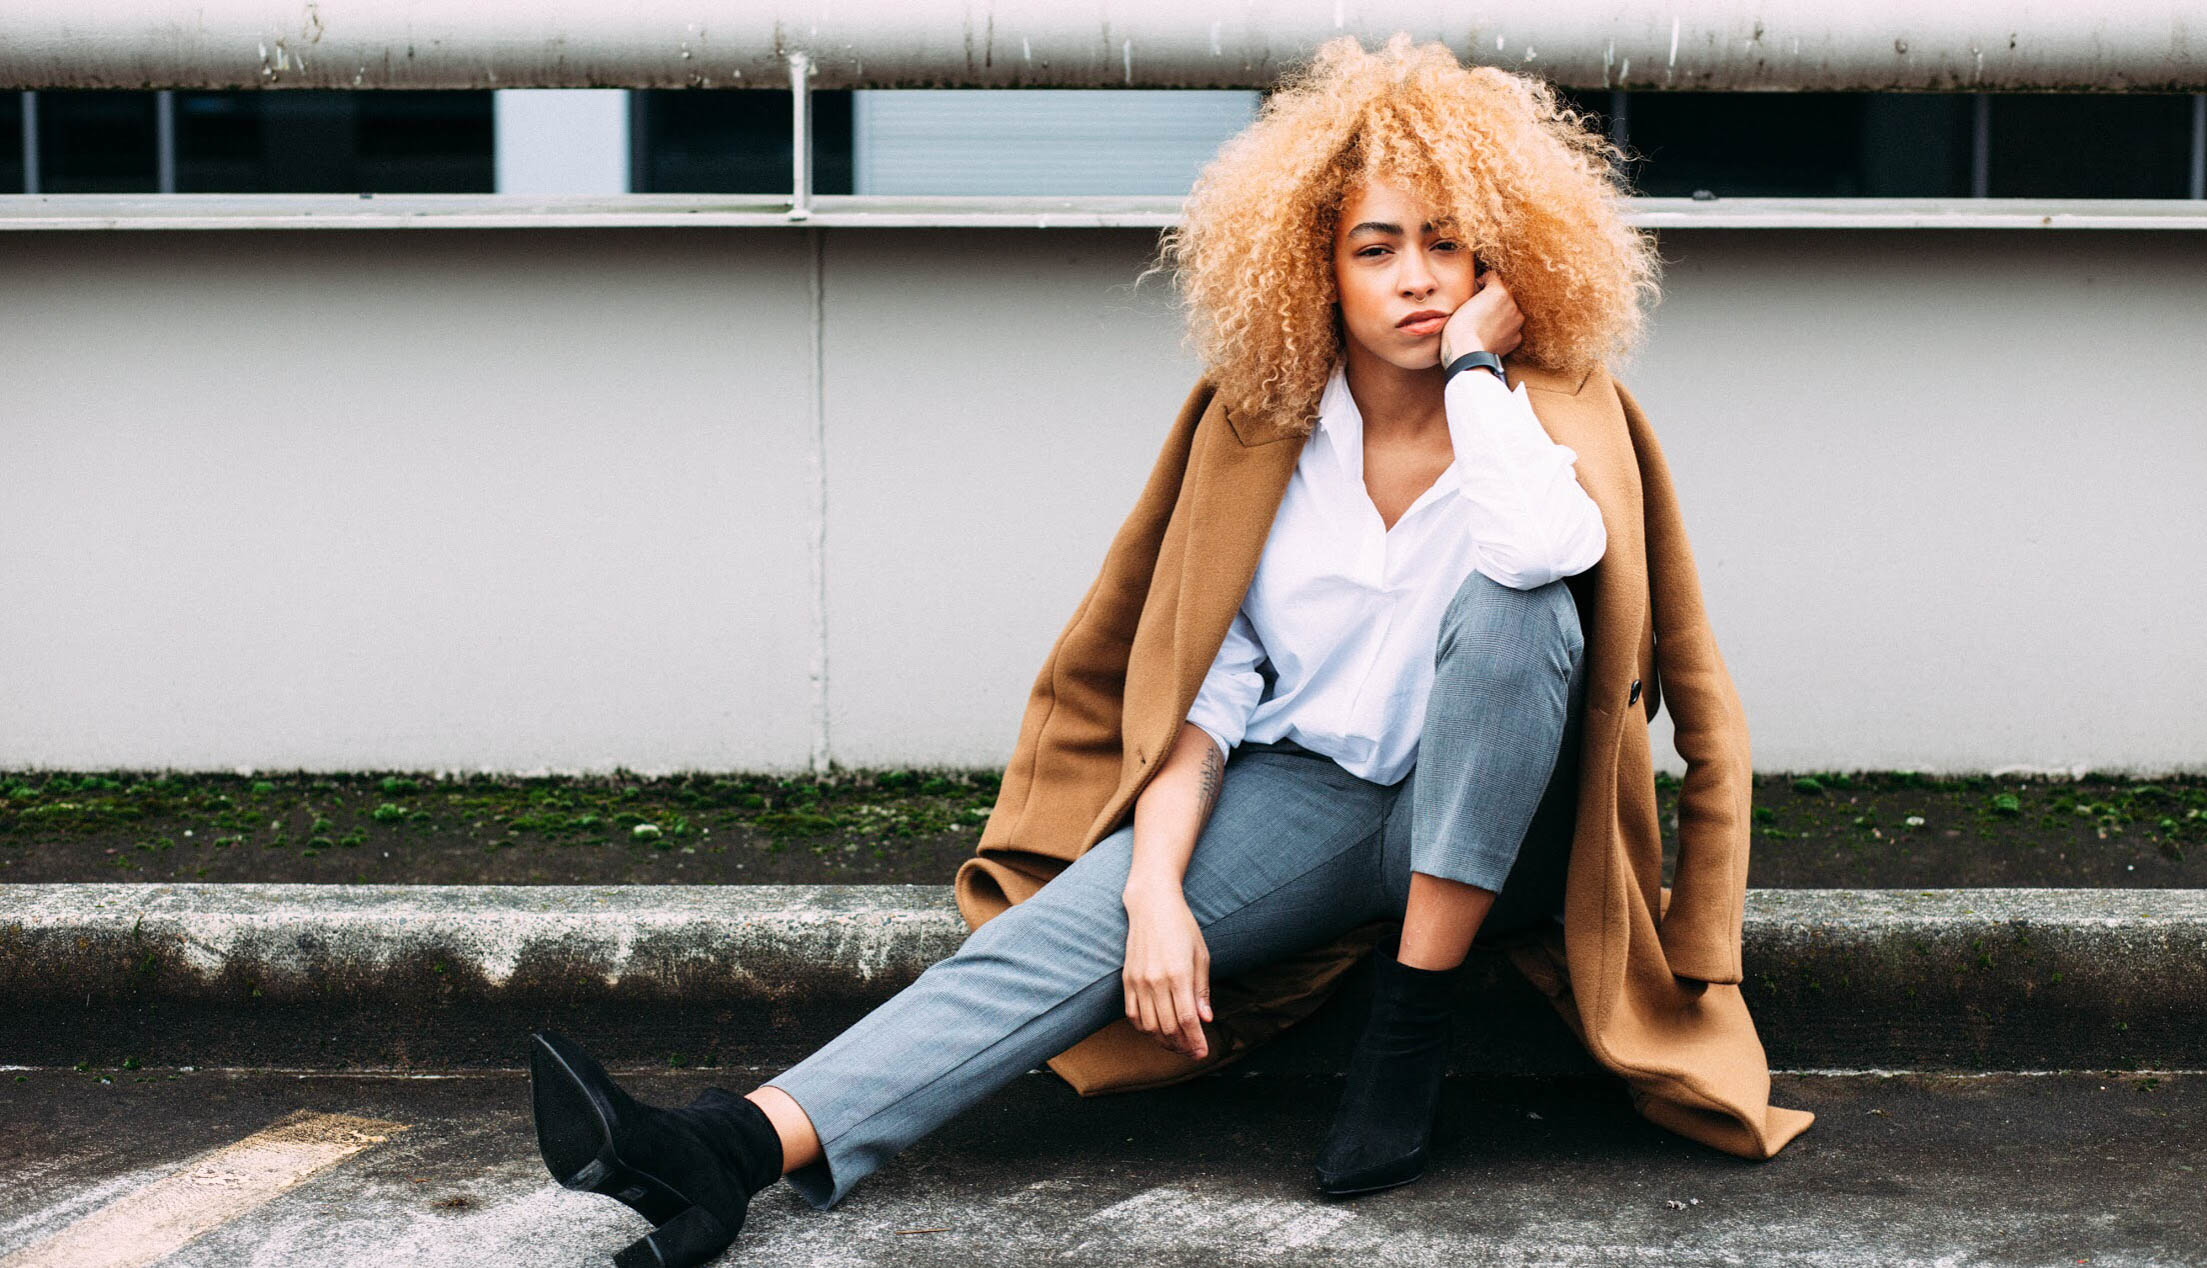 California Style Guide: The Fall Fashion Trends To Rock This Season